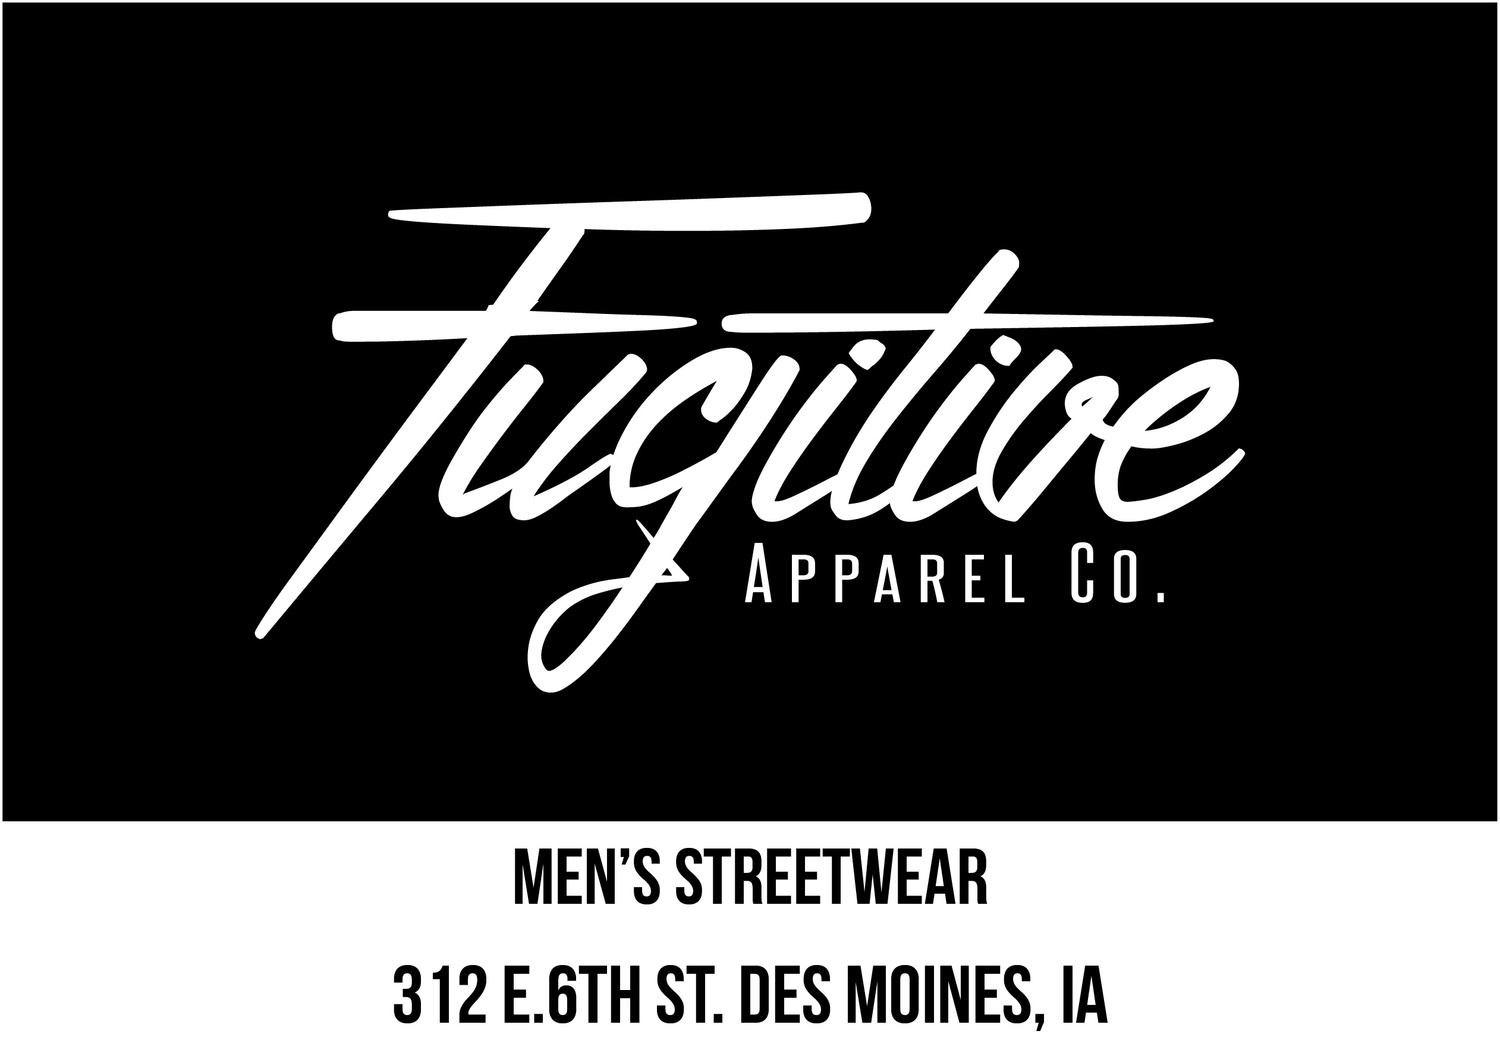 Fugitive Apparel Co.